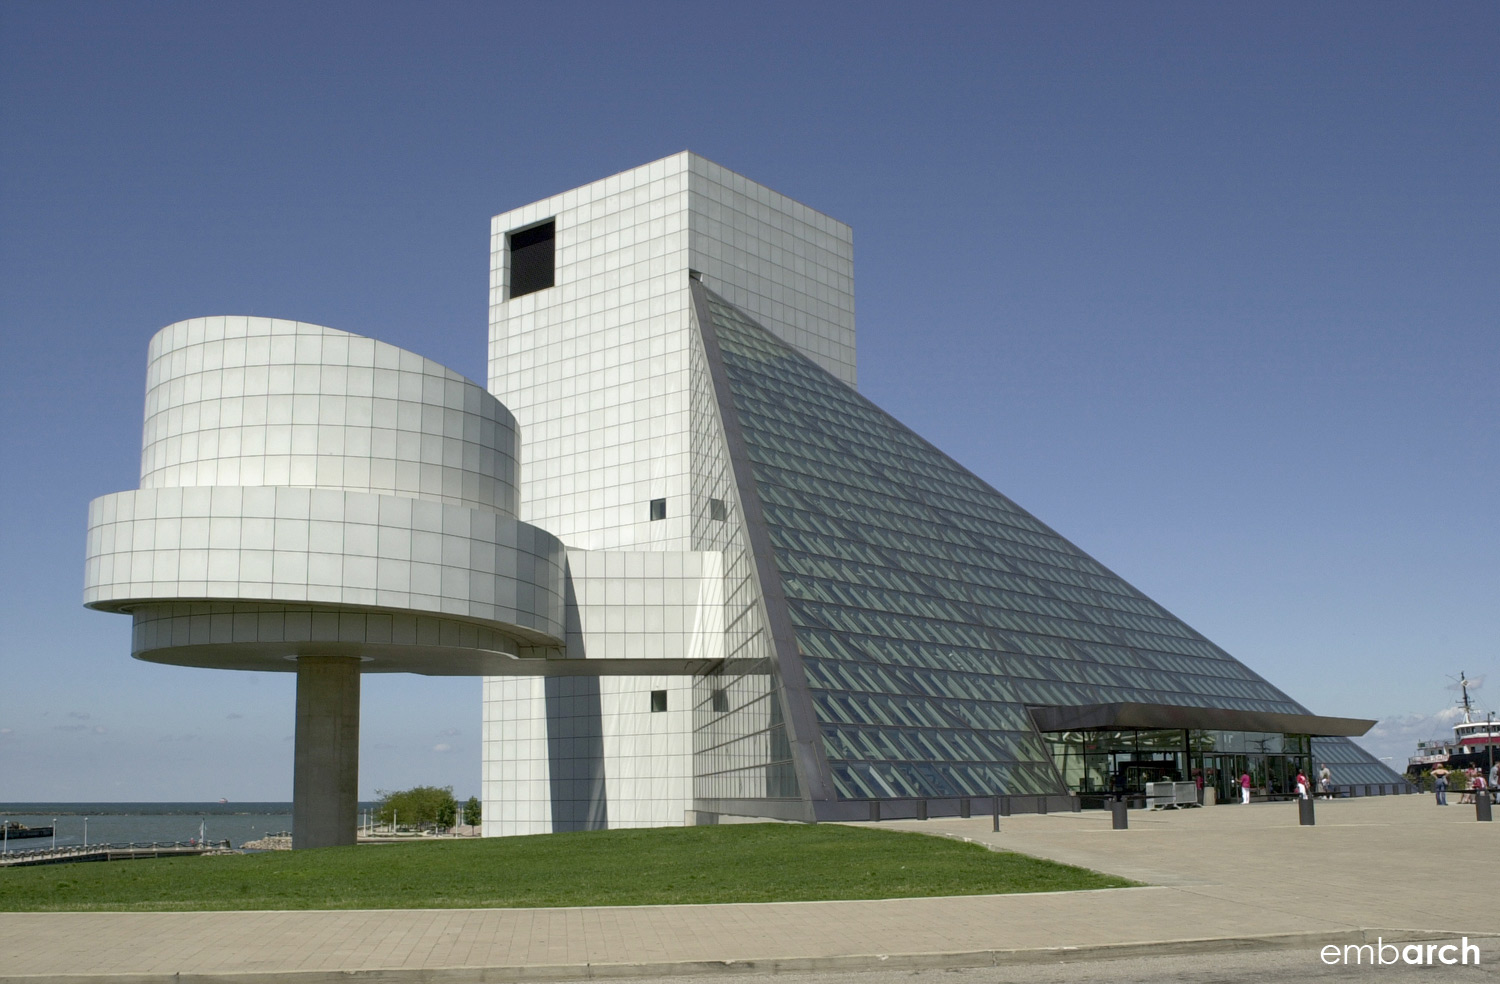 Rock and Roll Hall of Fame - exterior view